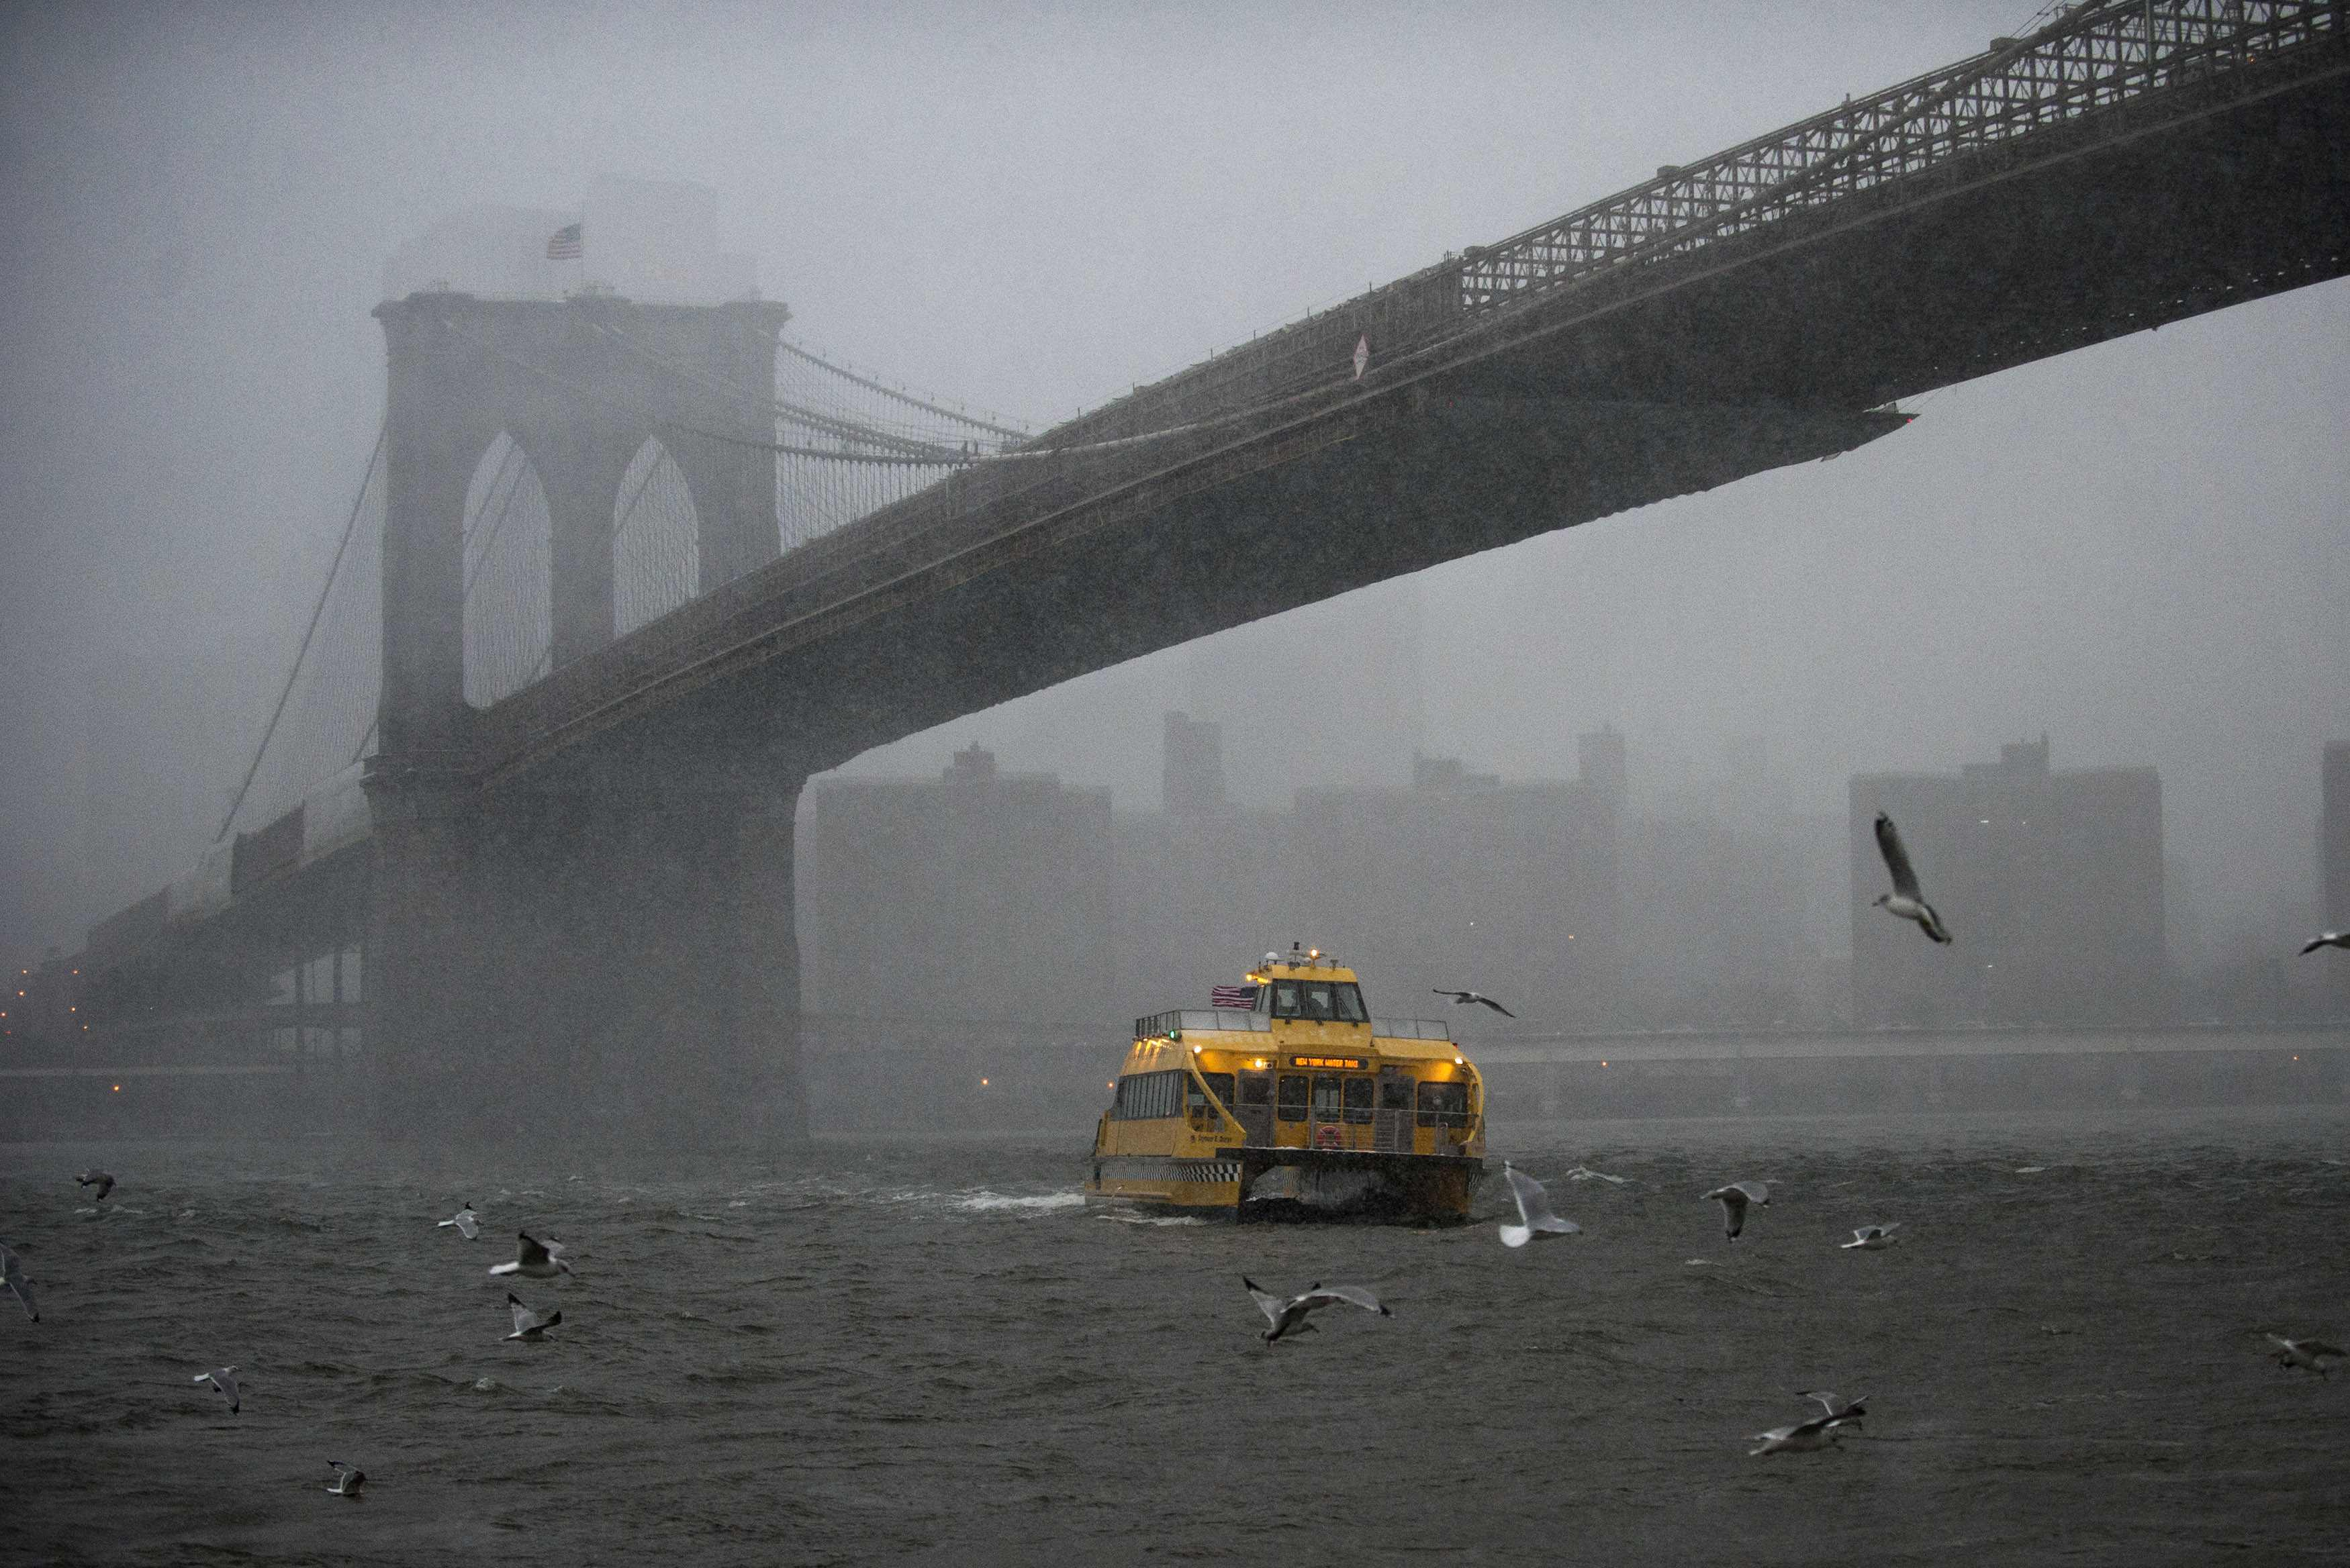 Winter Storm Nemo Blizzard Warnings And Flight Cancellations In Effect For New York New Jersey